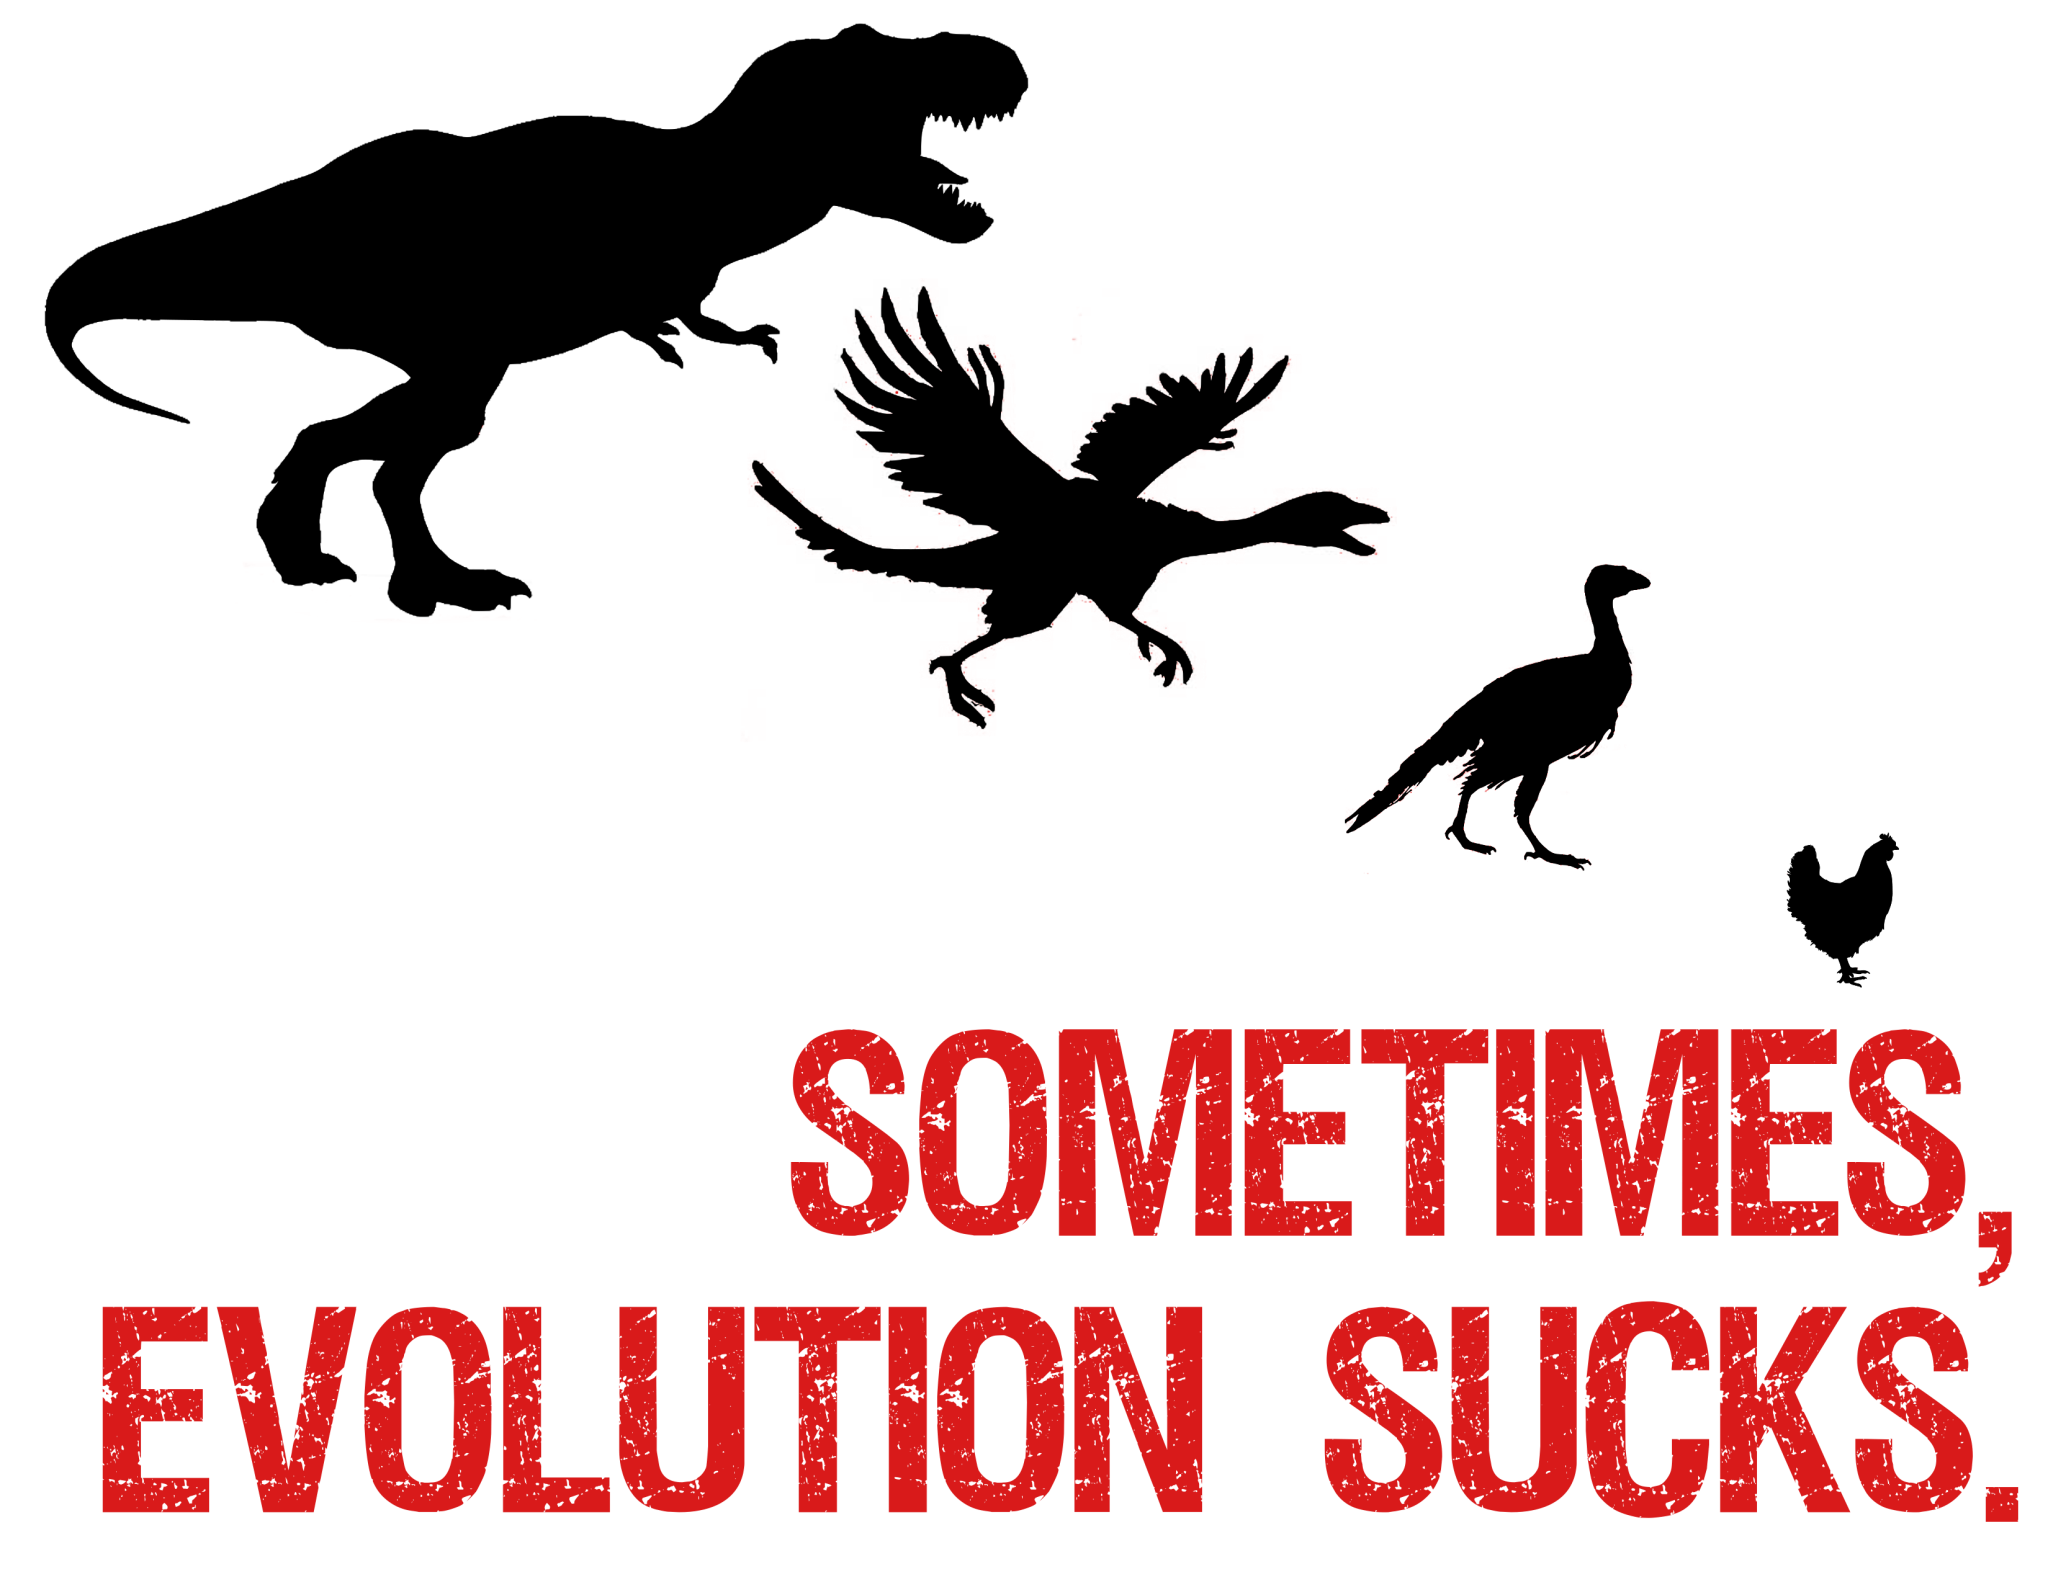 Sometimes, Evolution sucks tee shirt design